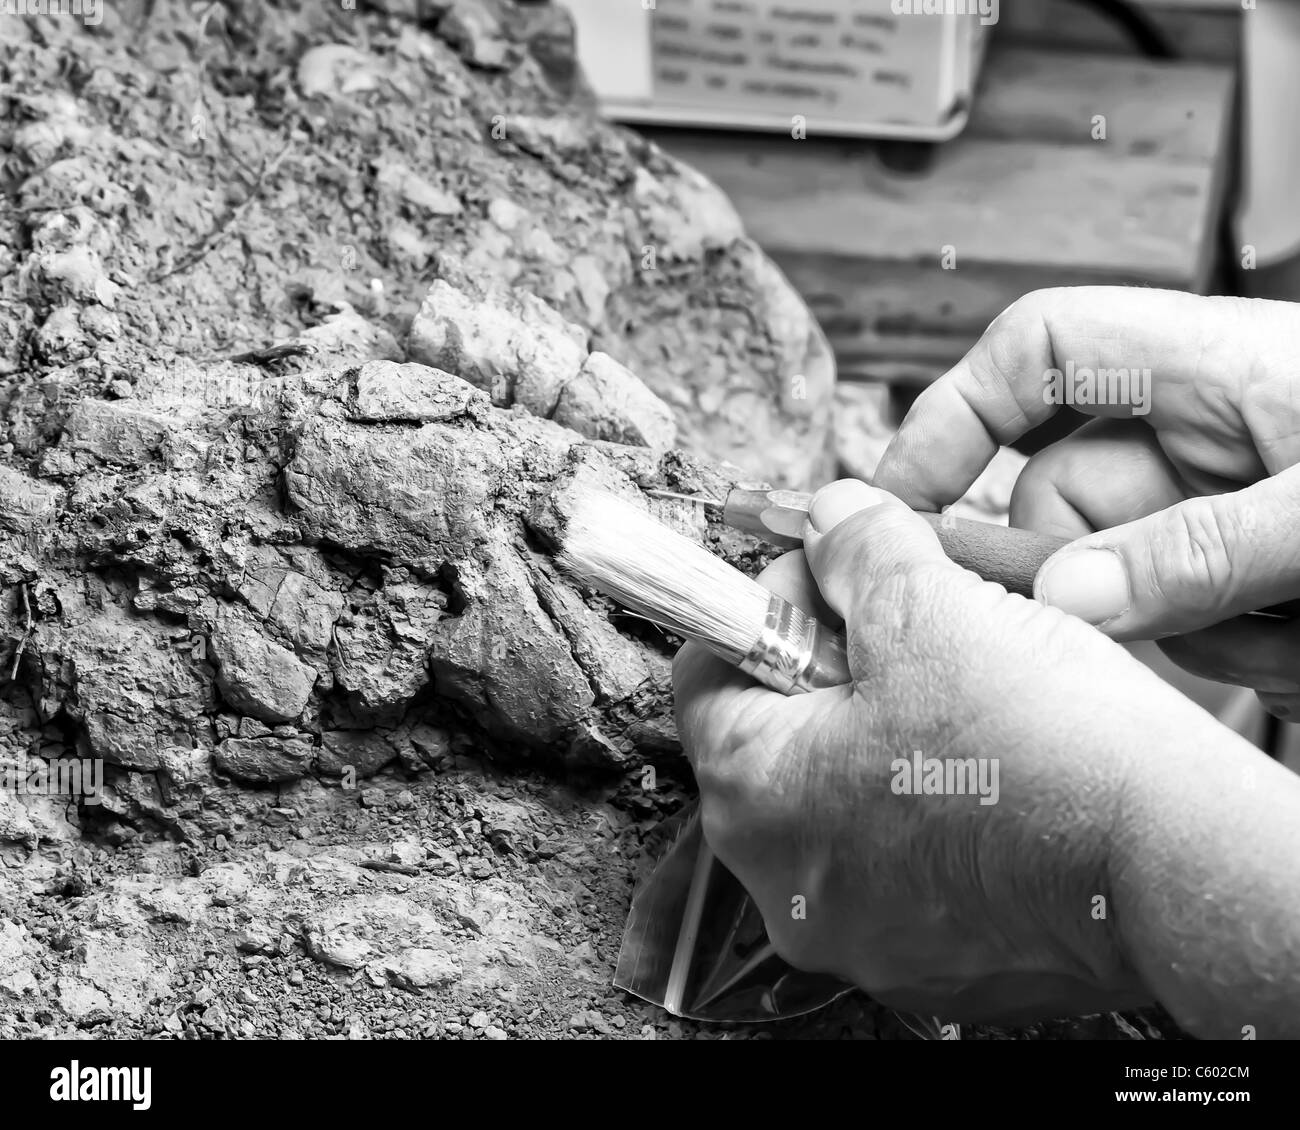 A volunteer works with both a brush and a stylus as she prepares and restores a Phytosaur fossil skull. - Stock Image